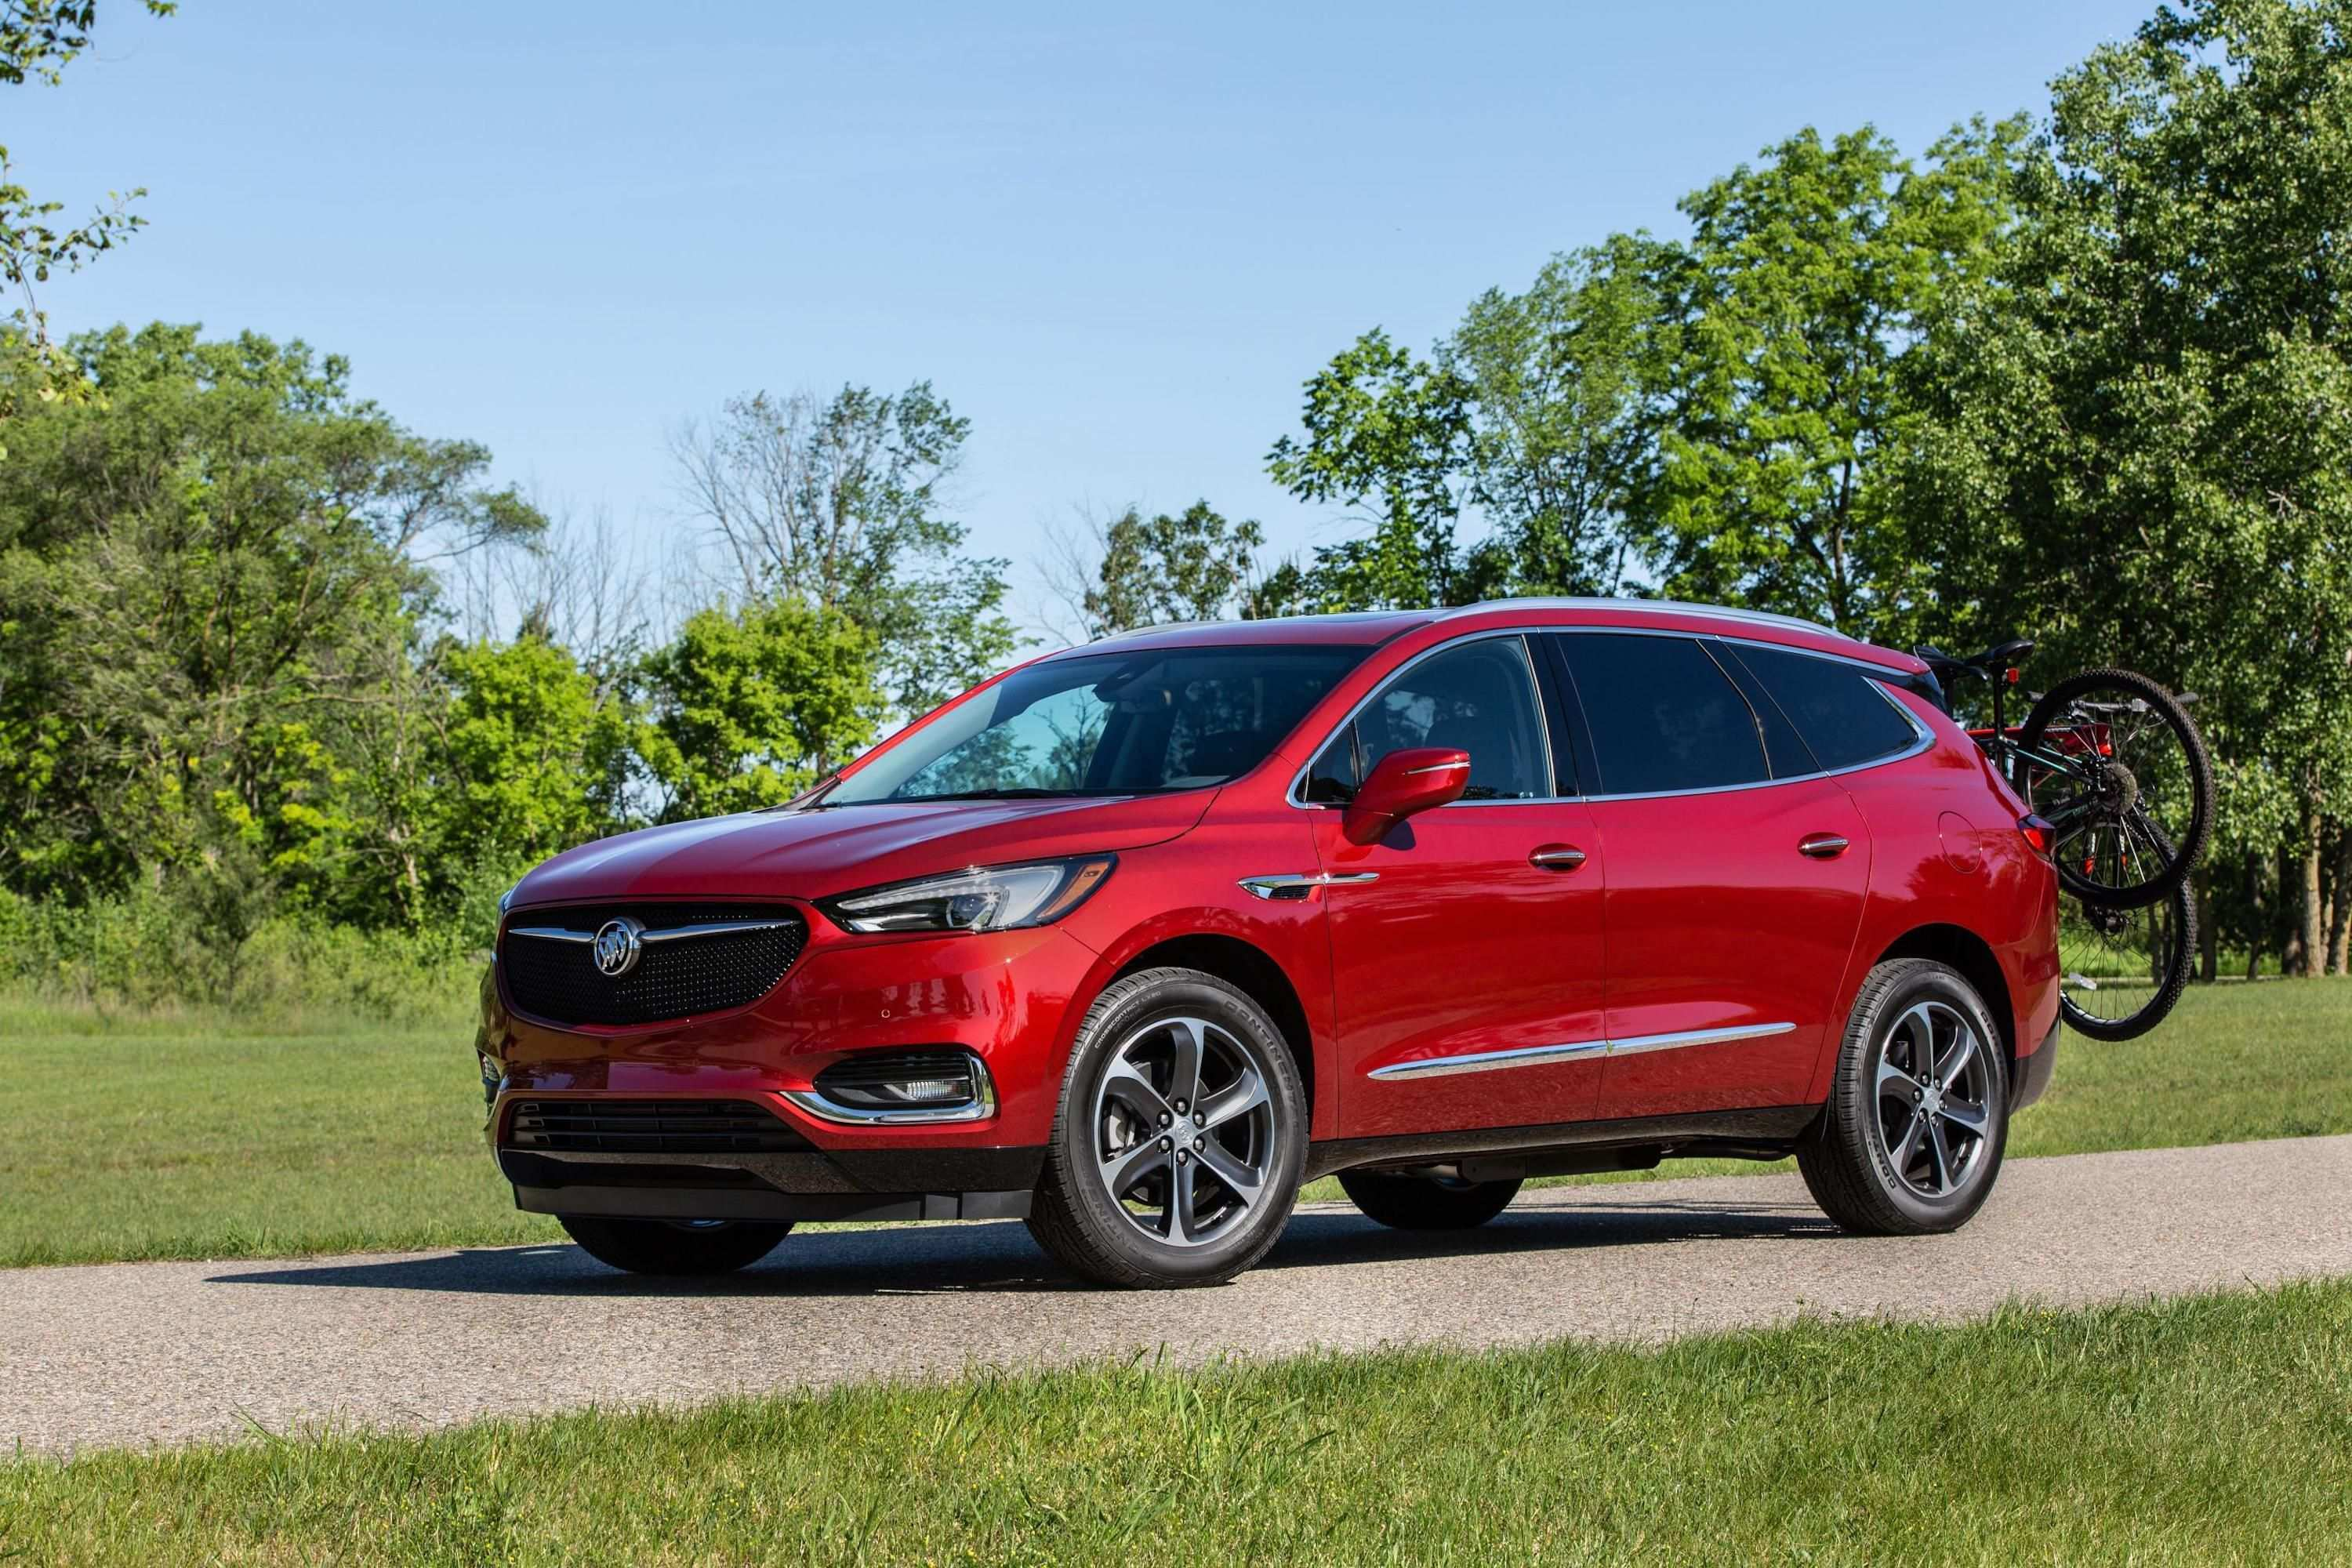 95 New 2020 Buick Crossover Research New for 2020 Buick Crossover